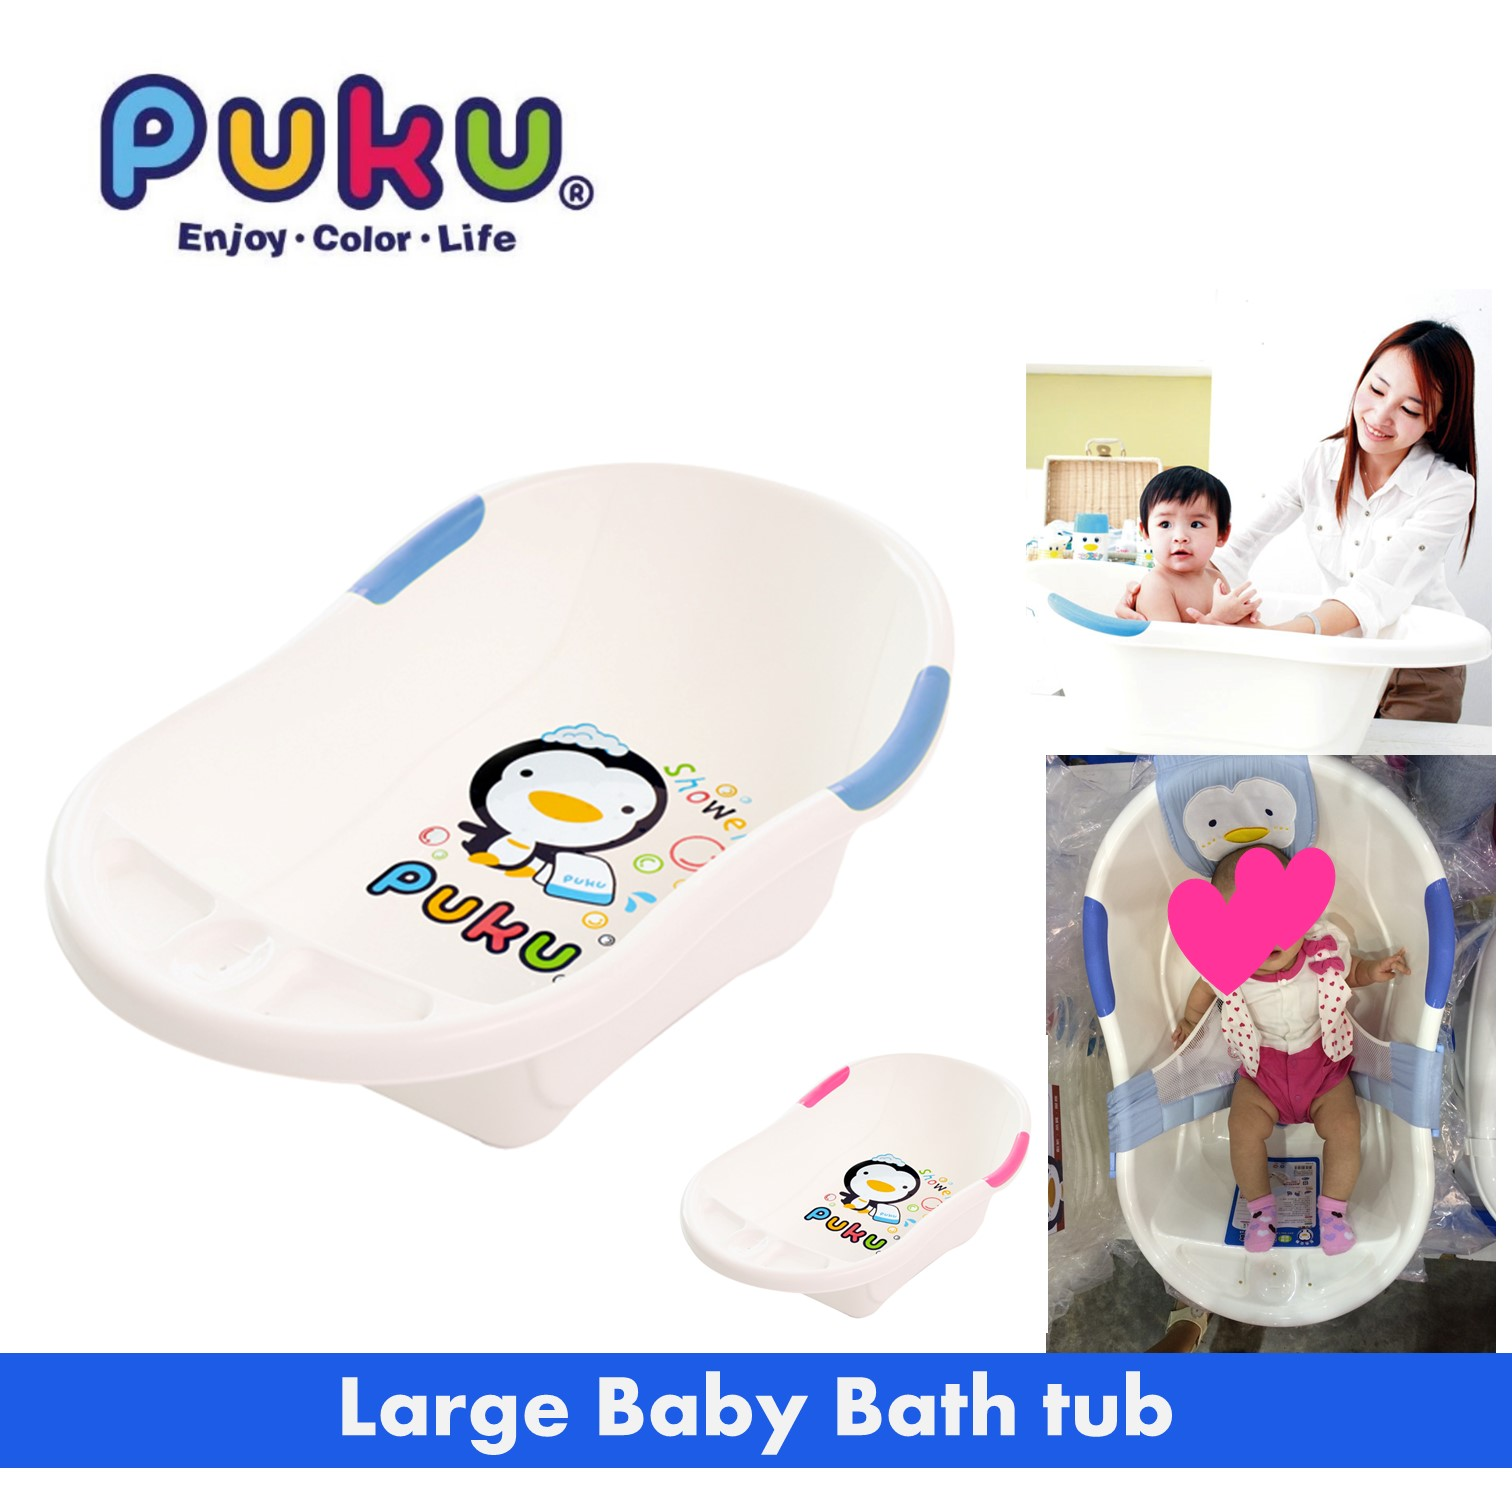 Buy PUKU Baby Bath tub largest size Deals for only S$69 instead of S$69